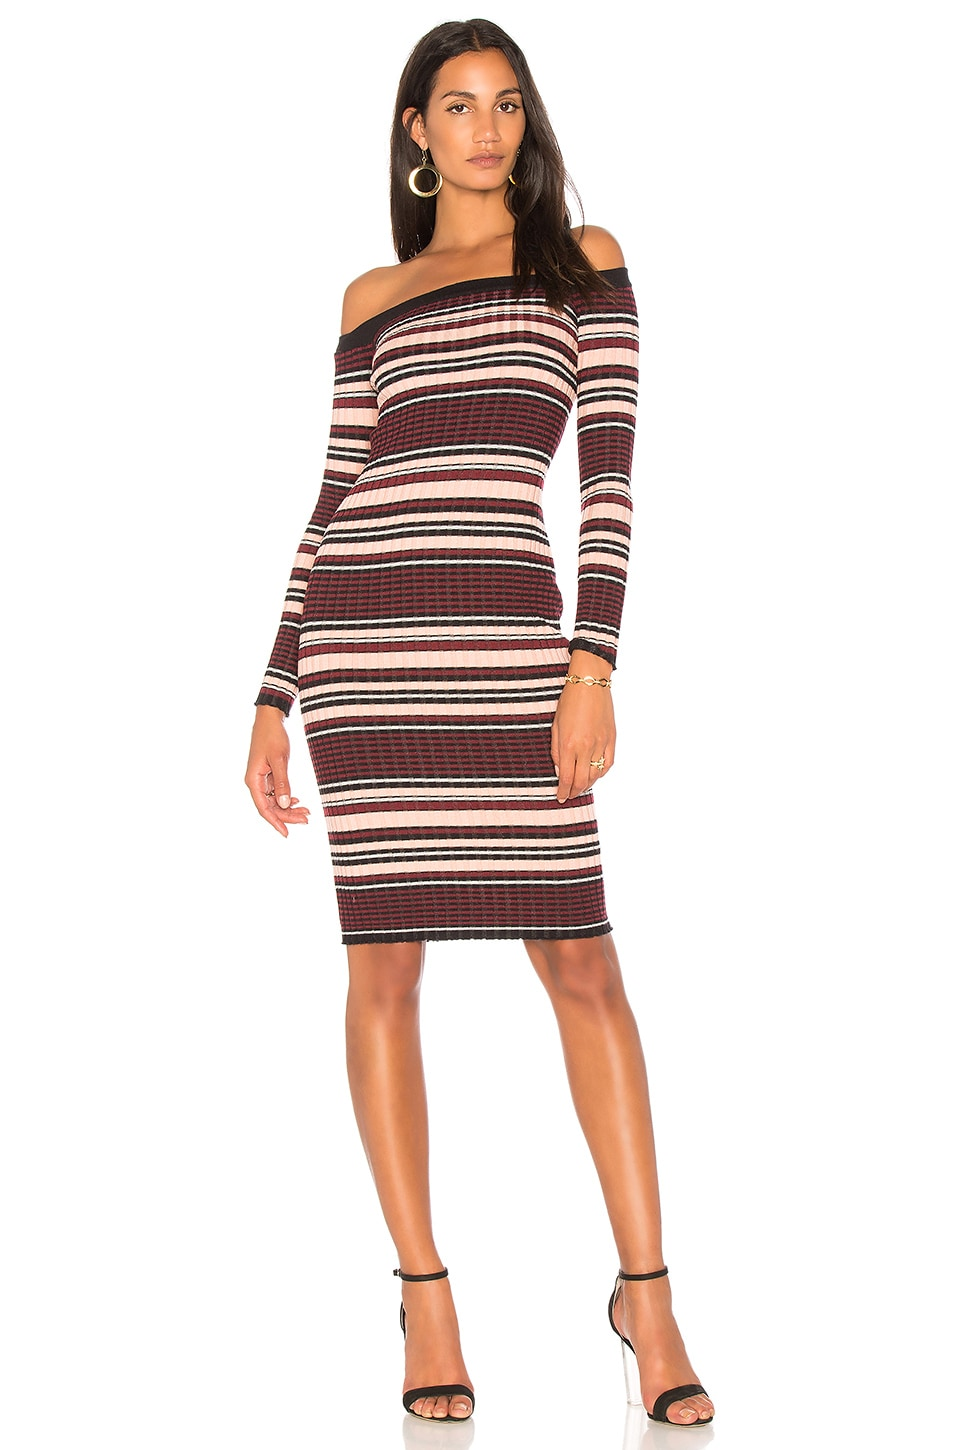 Tommy Dress by cupcakes and cashmere